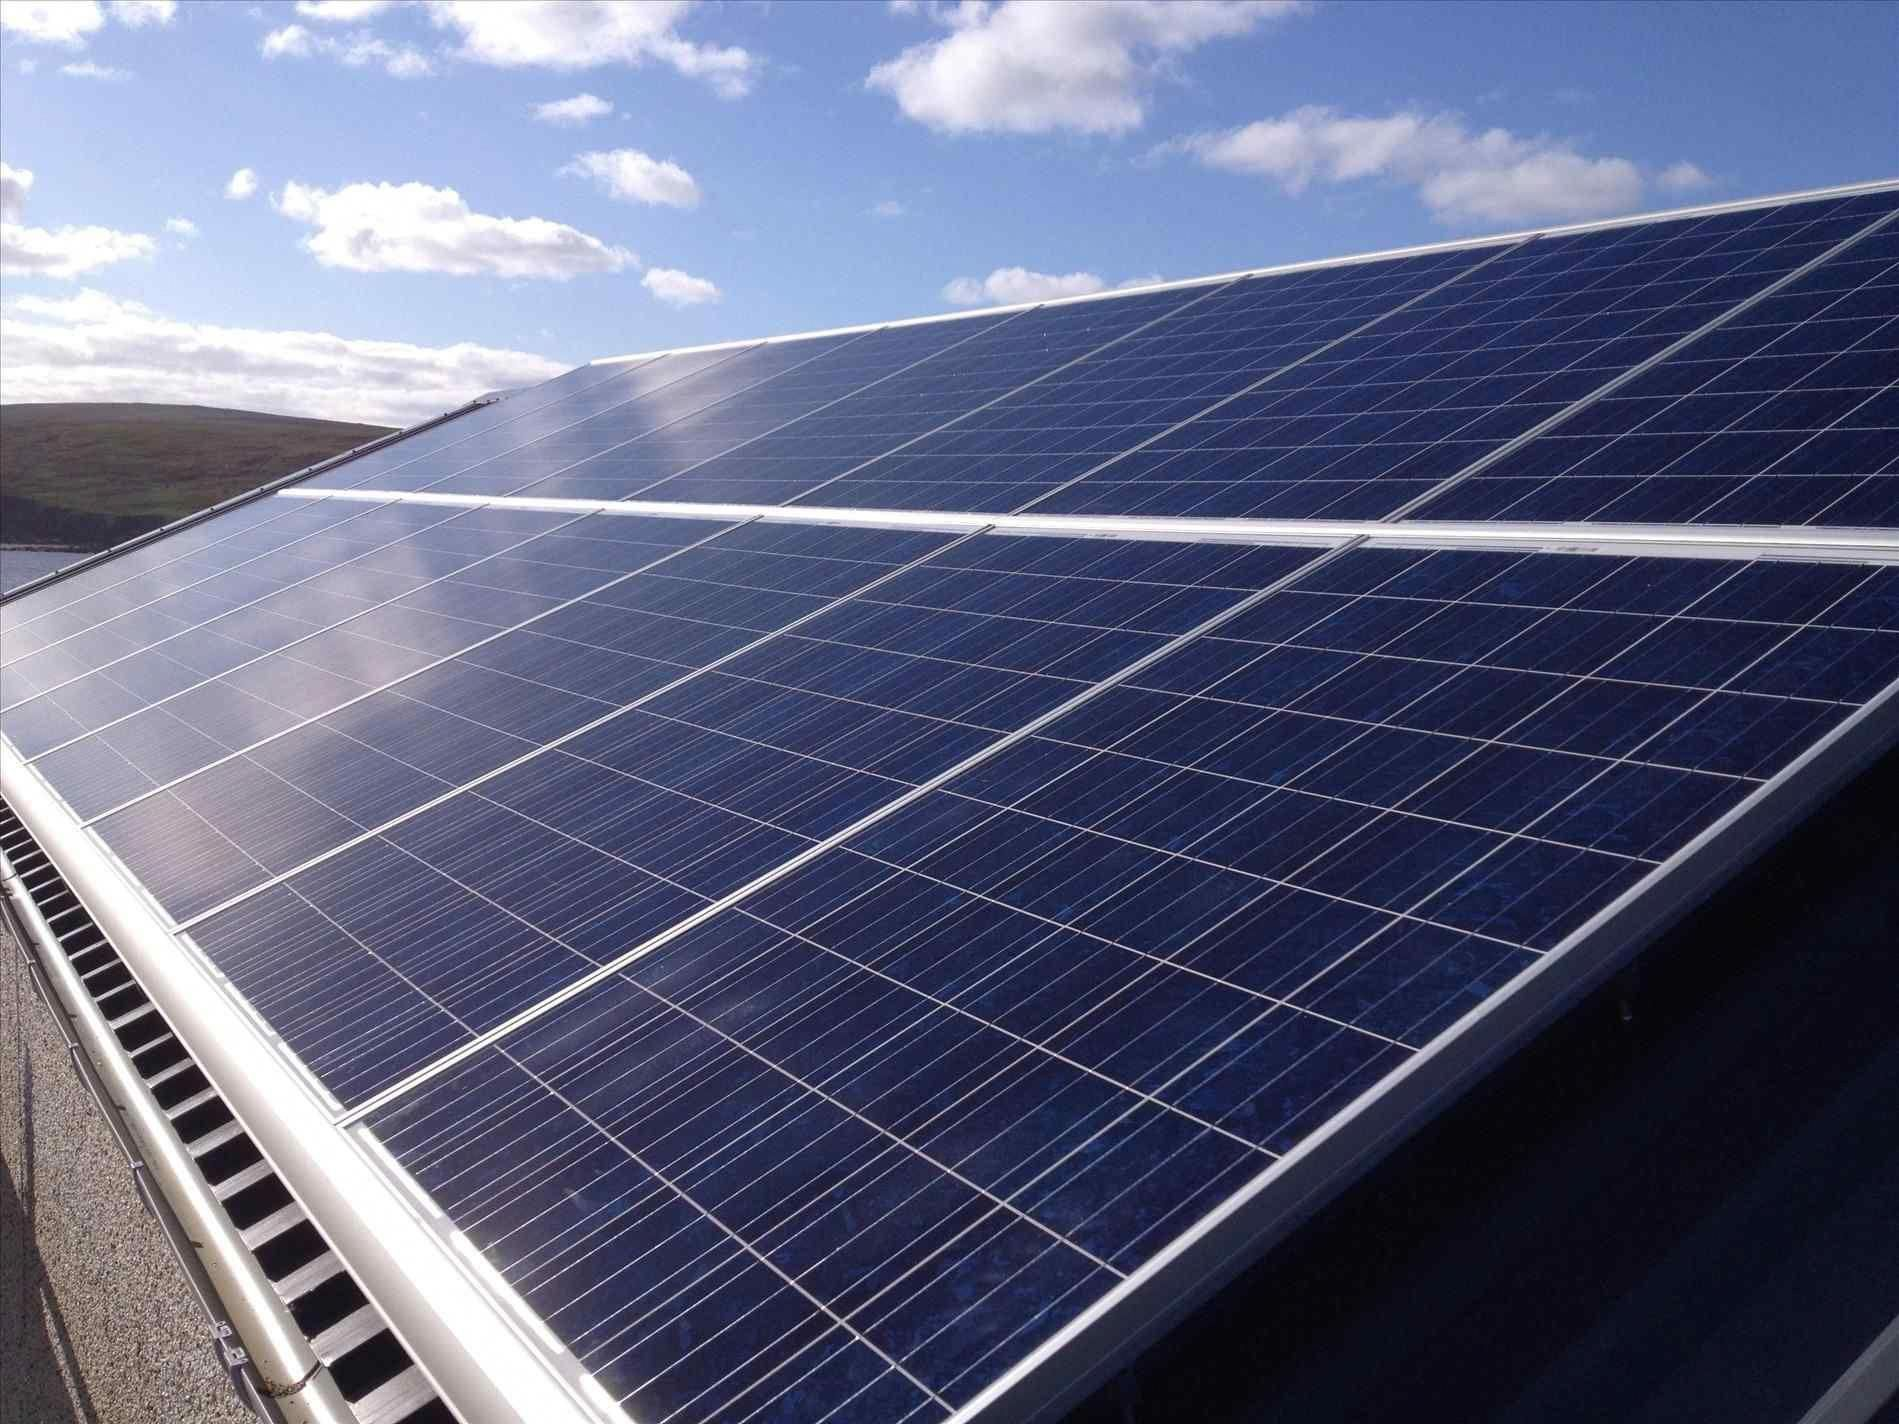 Marvellous Solar Panel Shingles Manufacturers Solar Offers Many Incentives Commercial Panel 6 Solar Panels Ont Solar Panels Metal Roof Solar Panel Shingles